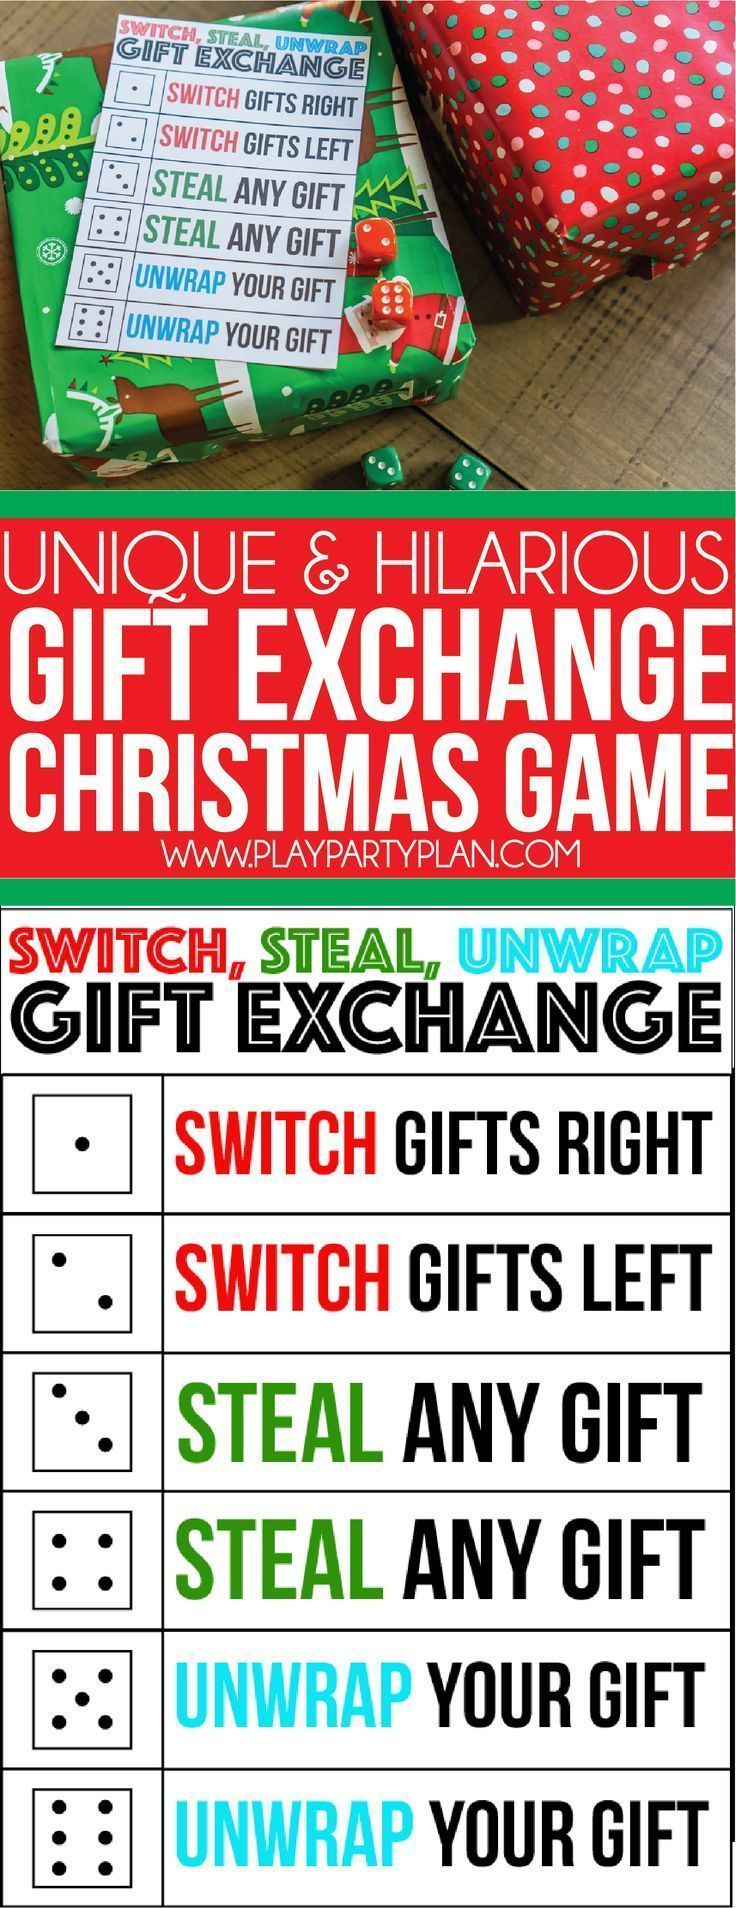 A perfect gift exchange game for kids, for adults, and even for teens! Simply roll the dice and see where the gifts end up. Definitely one of our favorite Christmas party games ever and it�ll quickly become a family or office favorite for you too!